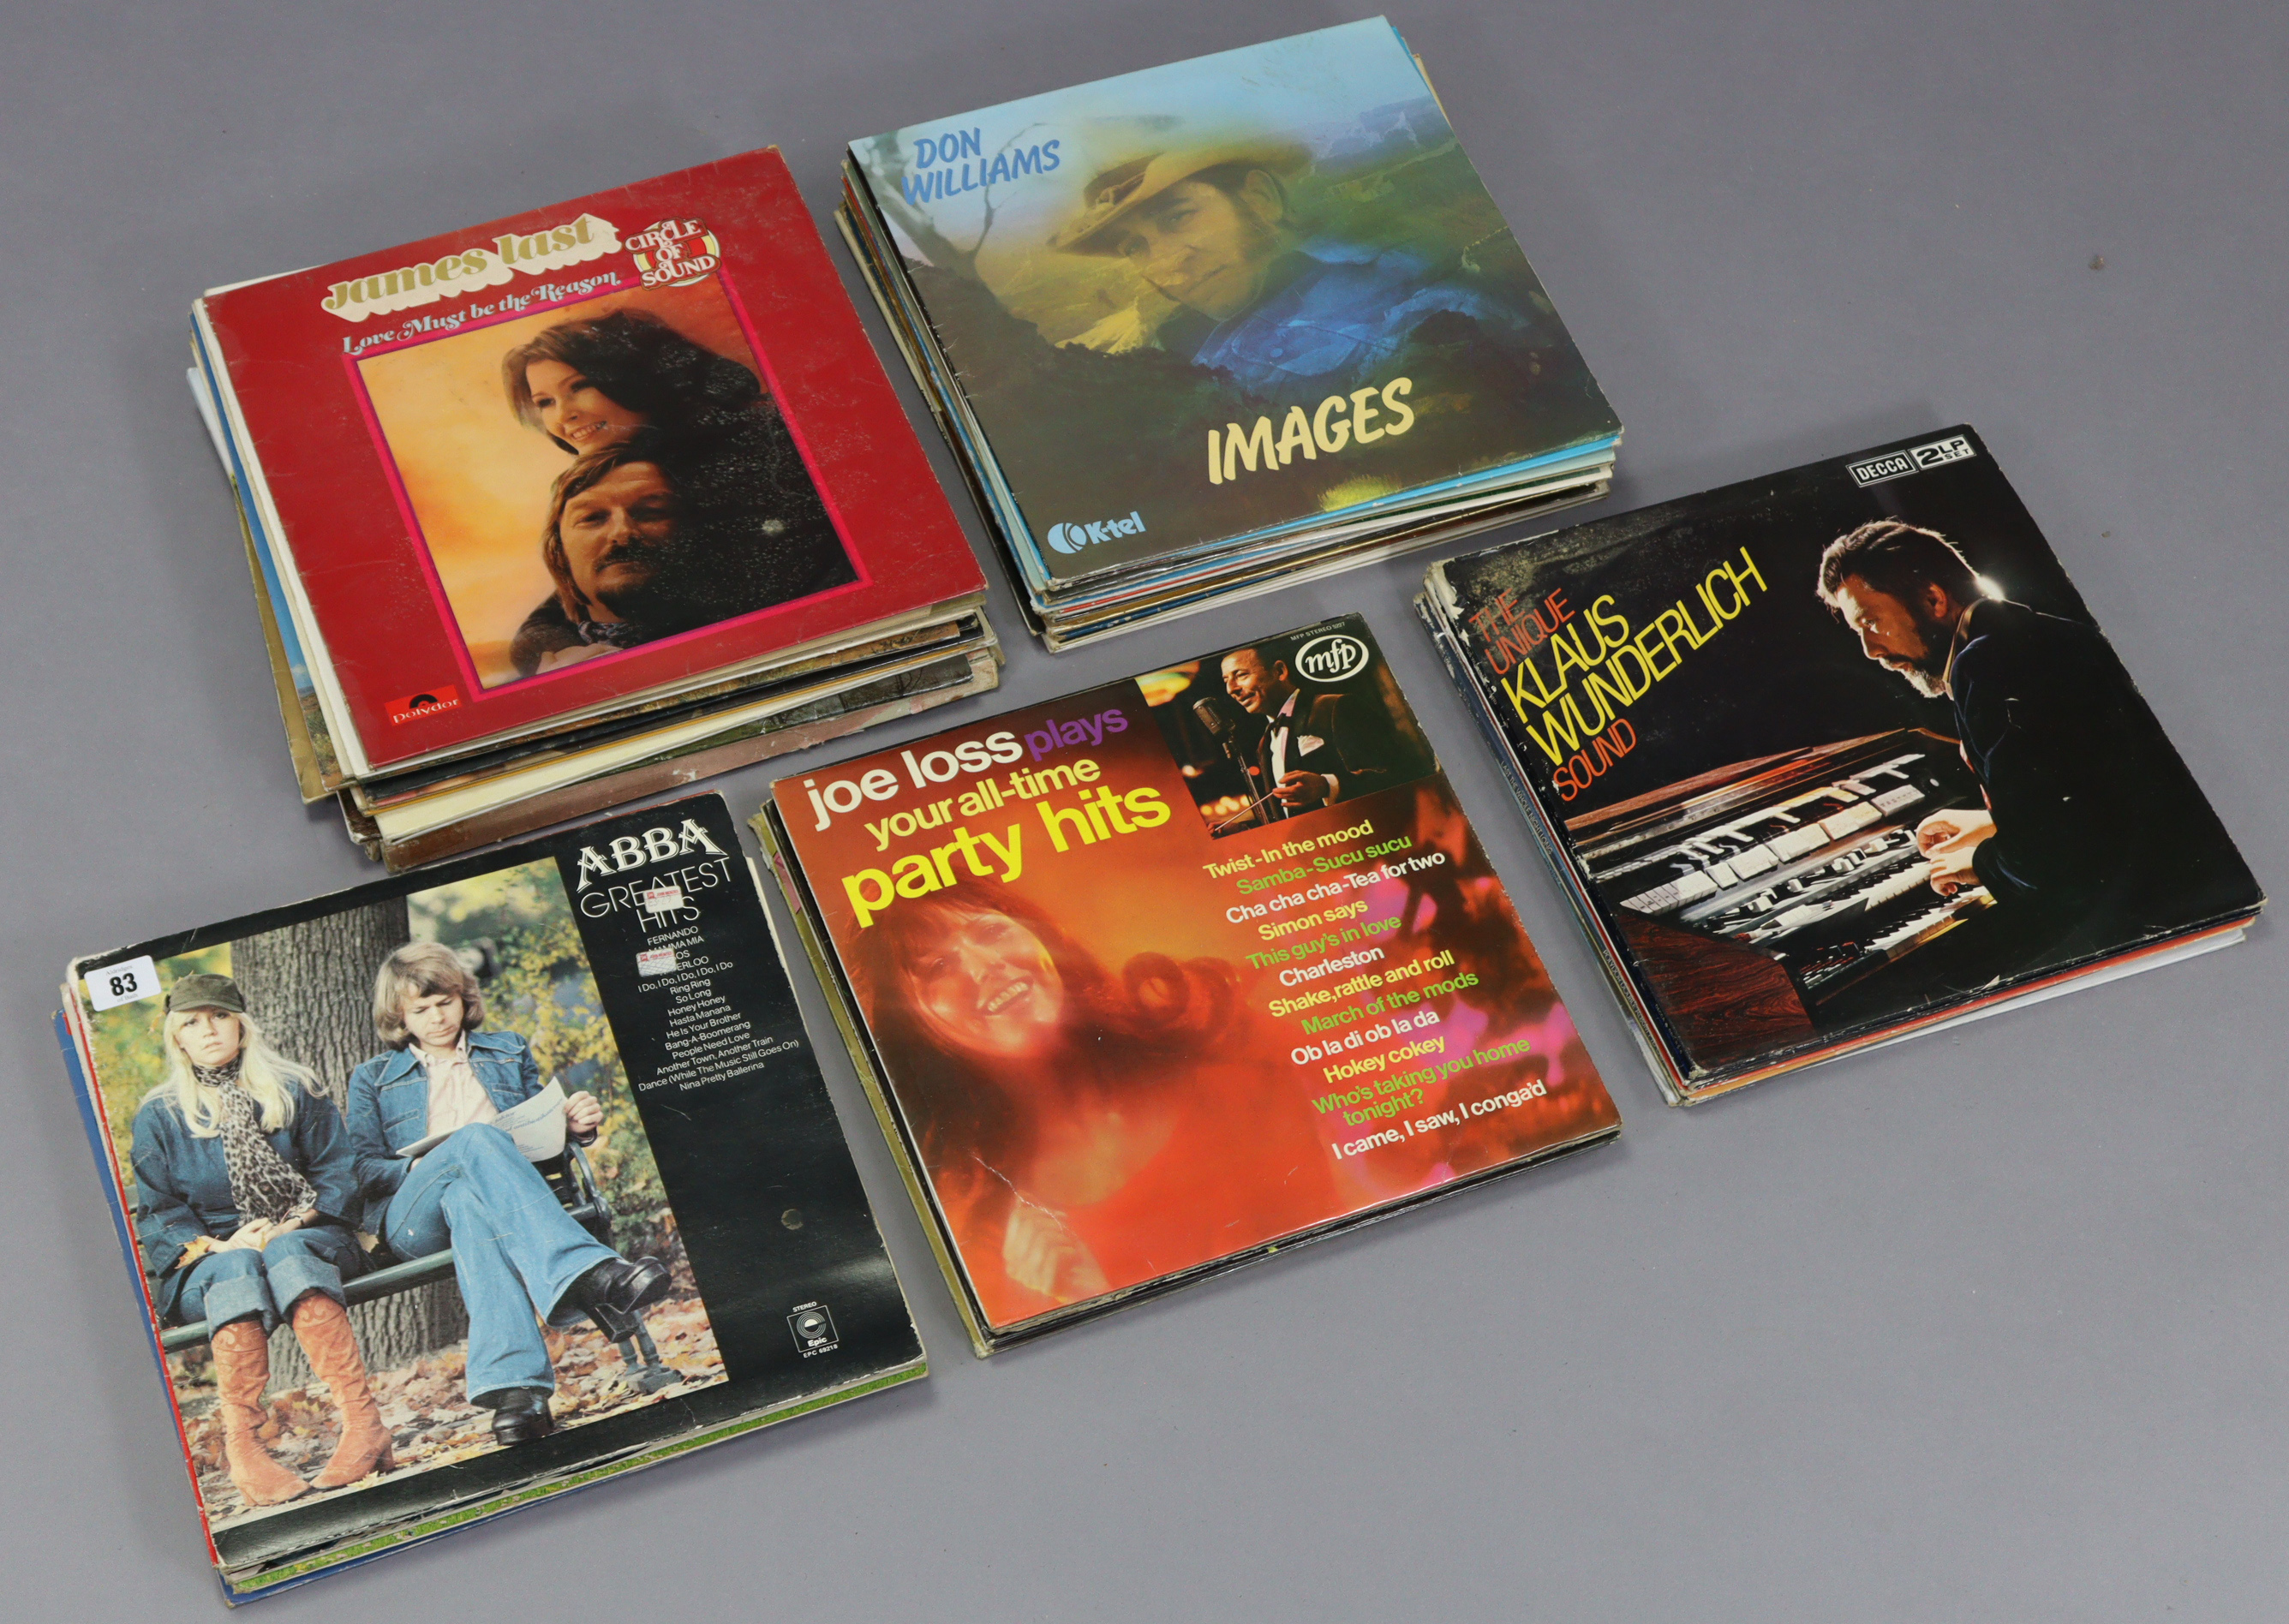 A collection of various records.